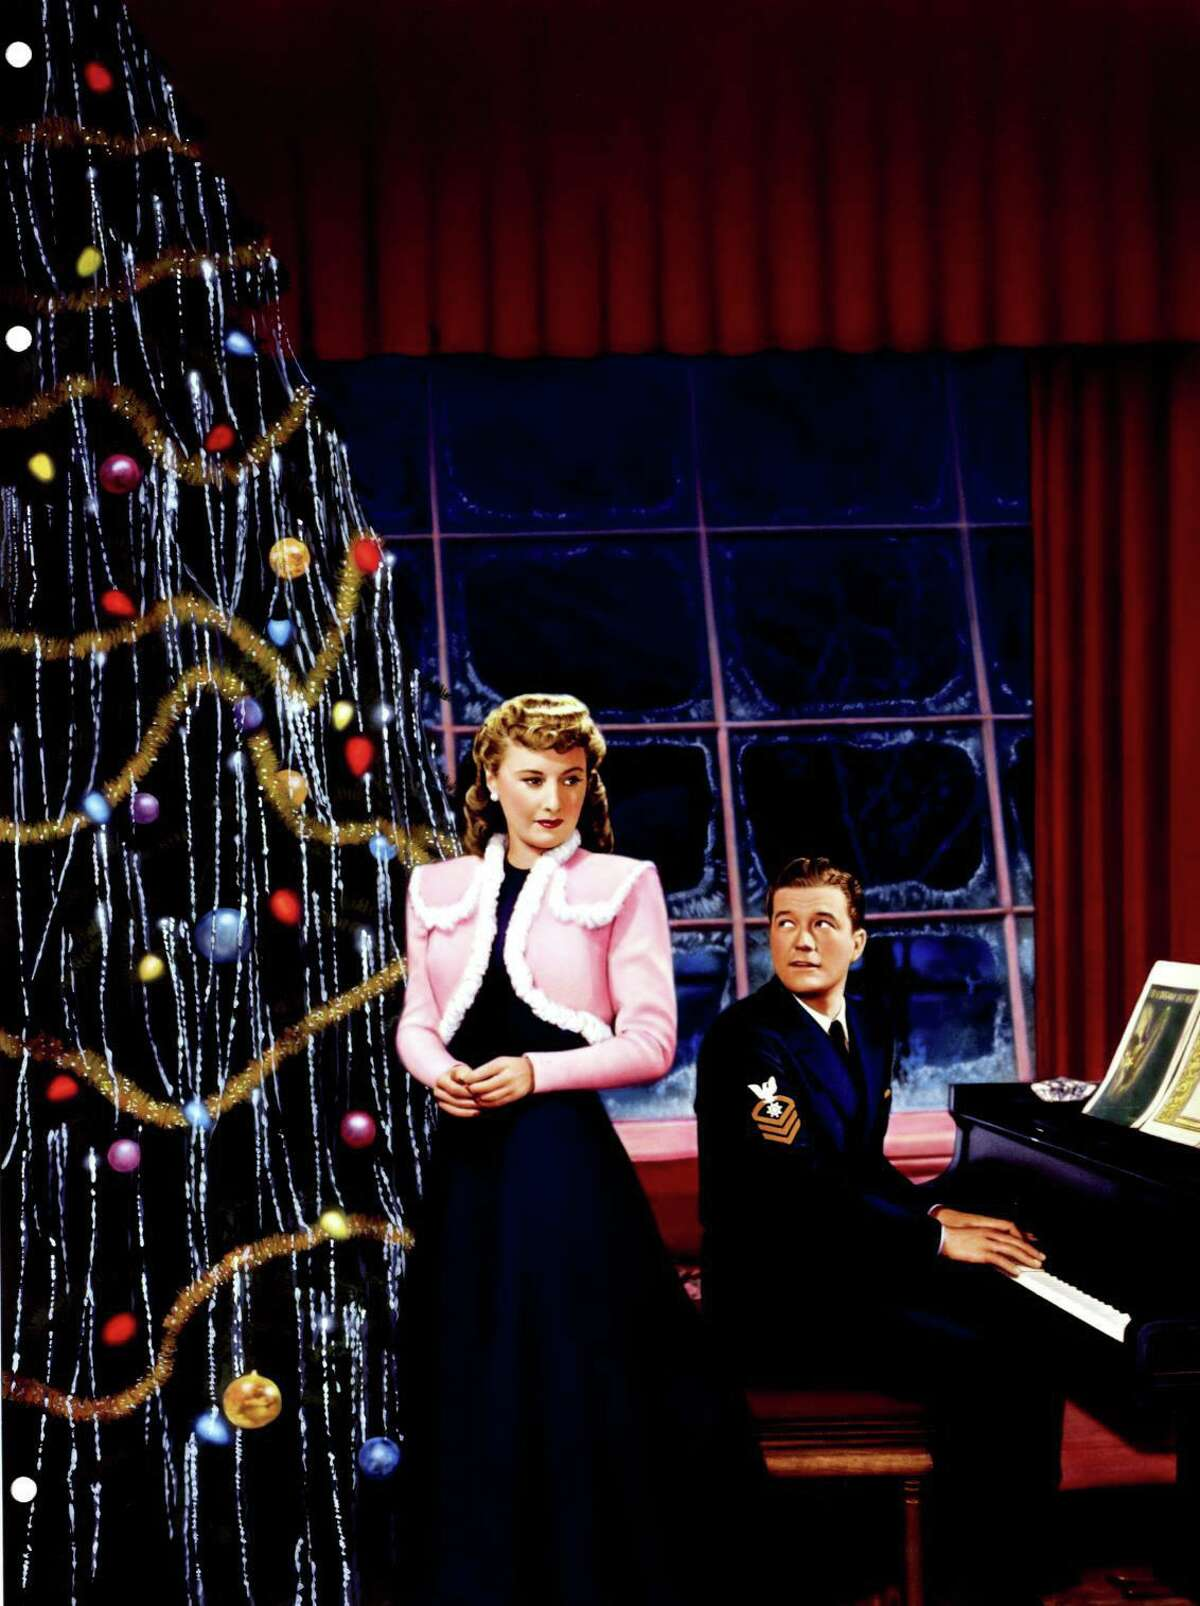 """Barbara Stanwyck and Dennis Morgan are seen in a poster for 1945's """"Christmas in Connecticut."""" Elizabeth, who is single, portrays herself as a Connecticut farm wife who's a whiz in the kitchen. All is well until her pushy publisher forces her to host a fan of her column, a returning war hero, at her home for the holidays. Her job on the line, she pretends to be everything she's not, using a suitor's farmhouse as her base. (The suitor, an architect, claims to love her but she's told him it's not mutual.) When handsome Navy hero Jefferson Jones (actor Dennis Morgan) shows up, she falls for him. With a name like """"Christmas in Connecticut,"""" you might think this movie, or at least parts, were filmed here. Not true. The farmhouse wasn't even real. It was a set built on a Warner Bros. soundstage in Burbank, Calif., said Julia Sweeten, whose popular blog, """"Hooked on Houses,"""" shares her obsession with memorable movie and TV houses, celebrity houses and HGTV. """"Besides the fabulous Barbara Stanwyck and her amazing wardrobe in the movie, the primary draw for me was the setting,"""" she said, of the house, with a grand fireplace so tall, the mantel is over the heads of the people. When she researched the movie for her blog, she was intrigued by the Taber link."""